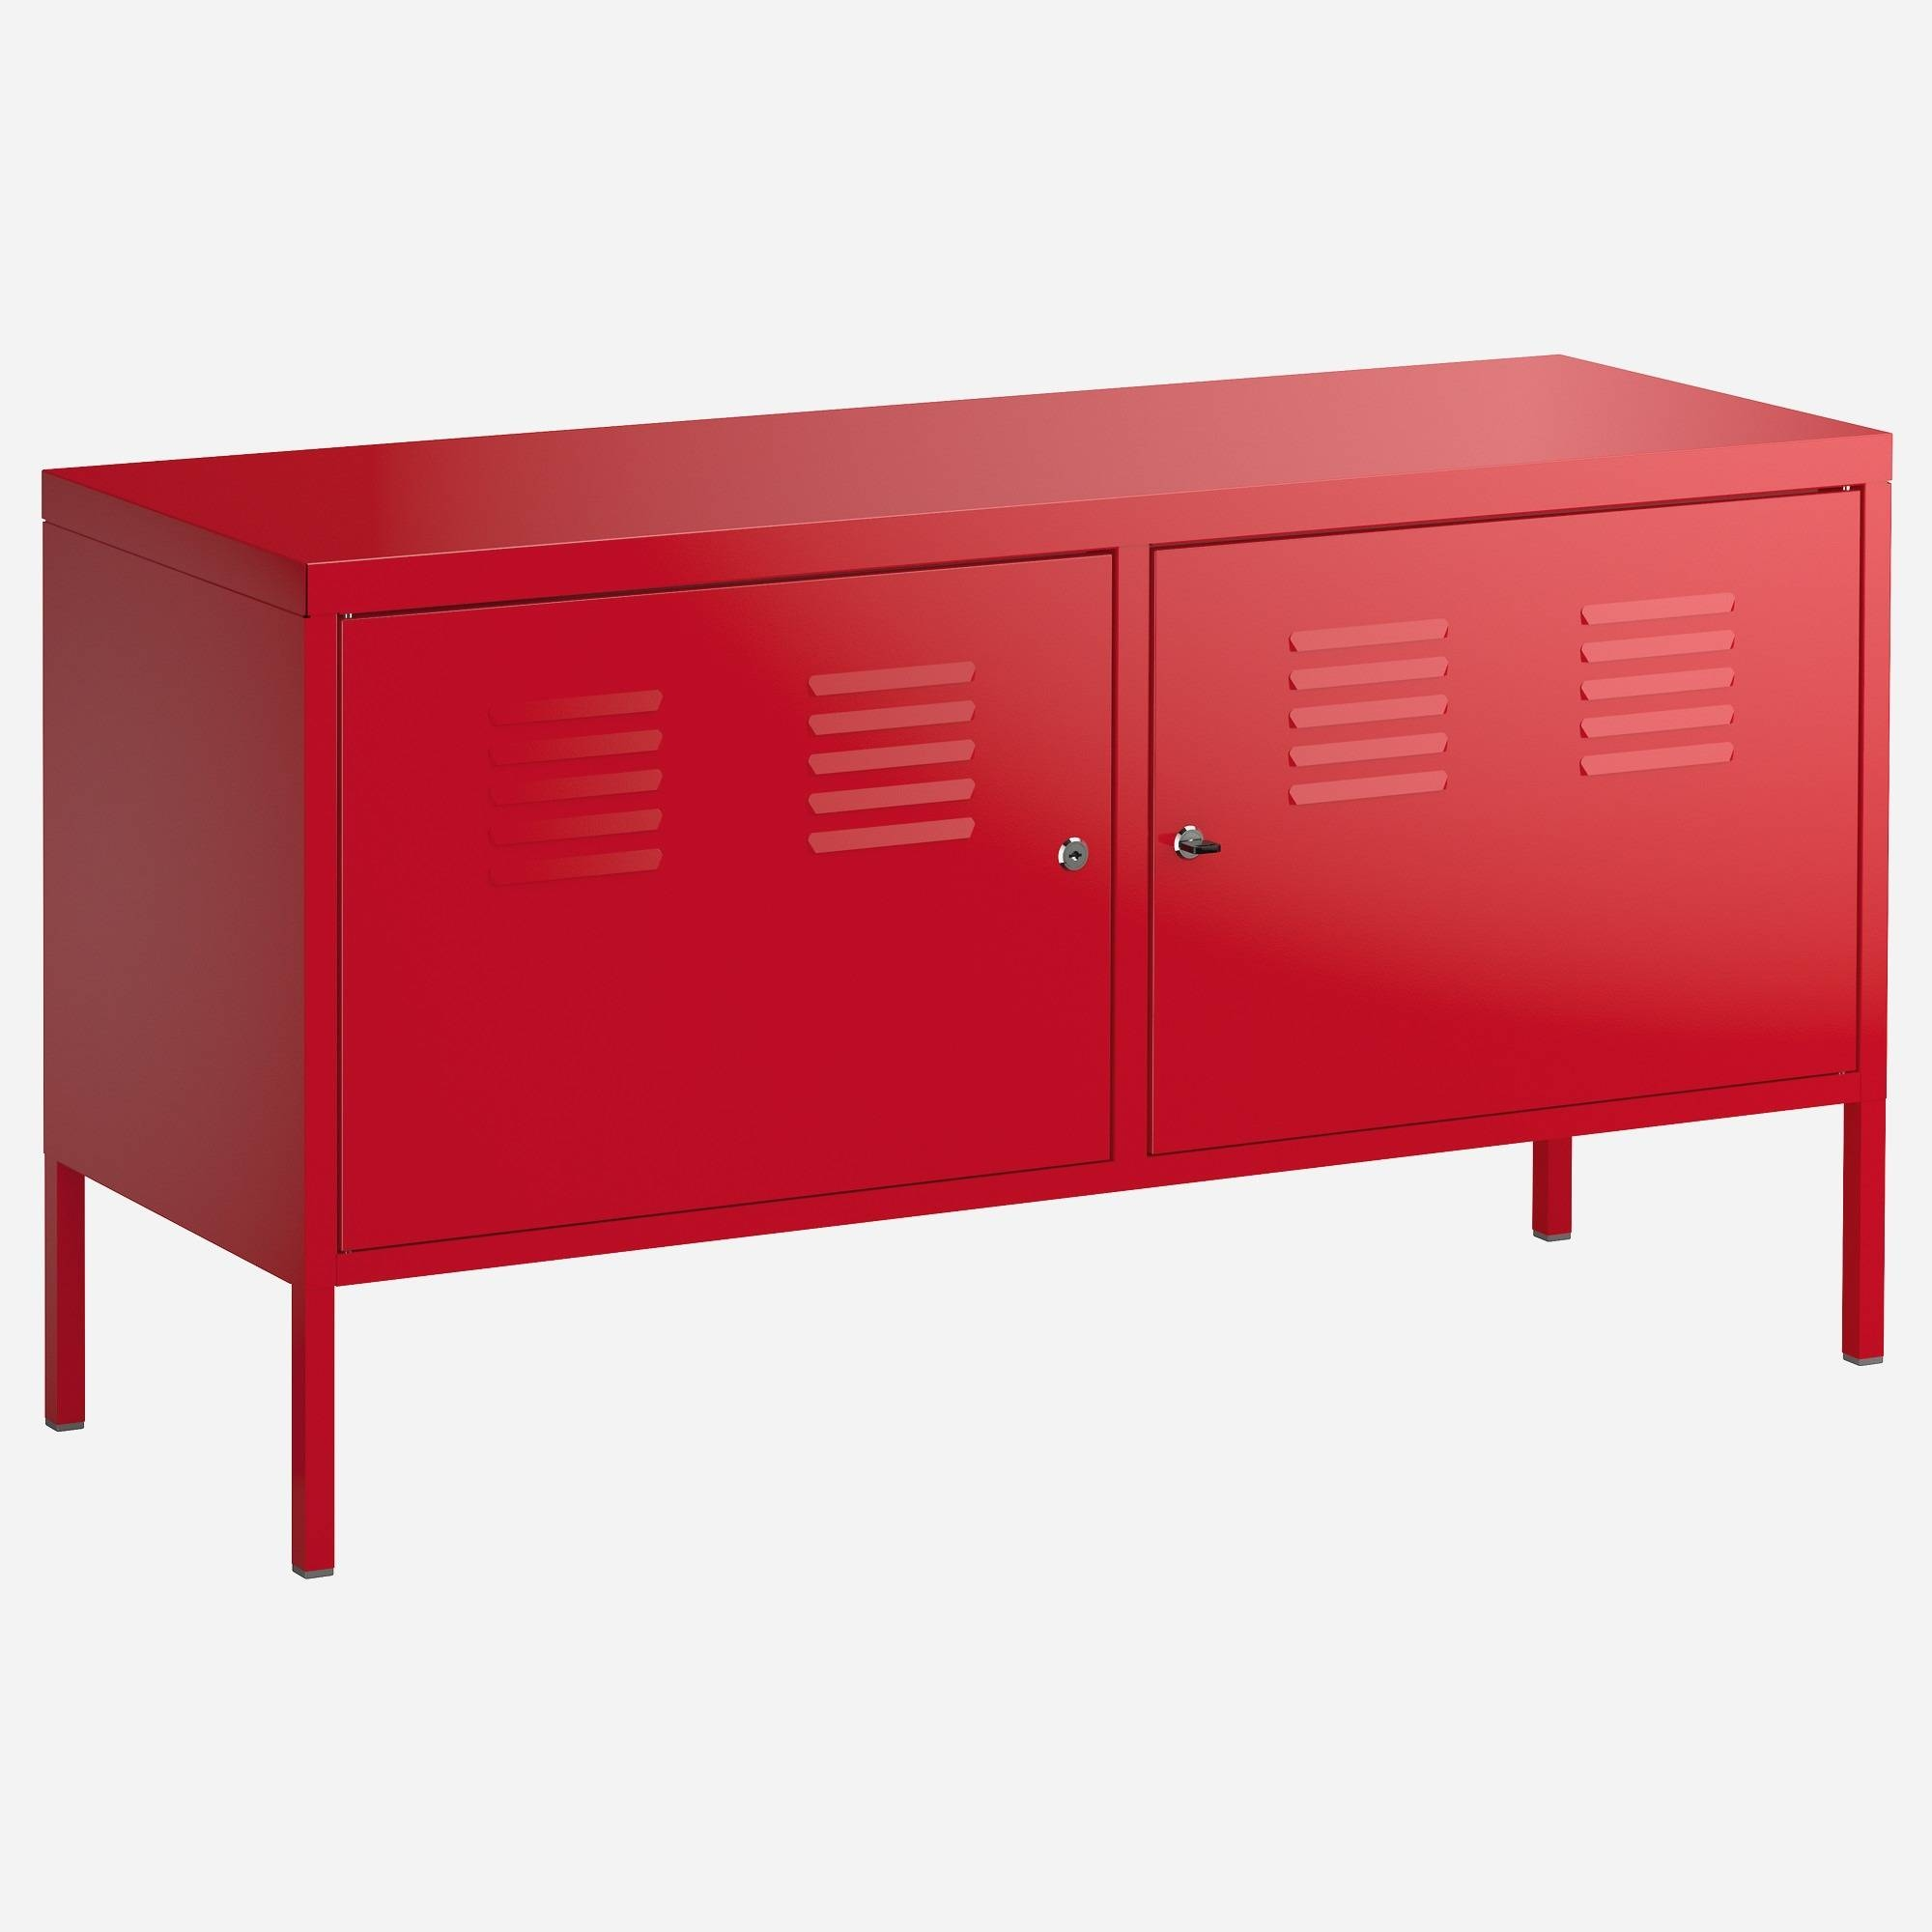 Ikea Buffets And Sideboards | Rembun.co with Red Sideboards (Image 12 of 30)